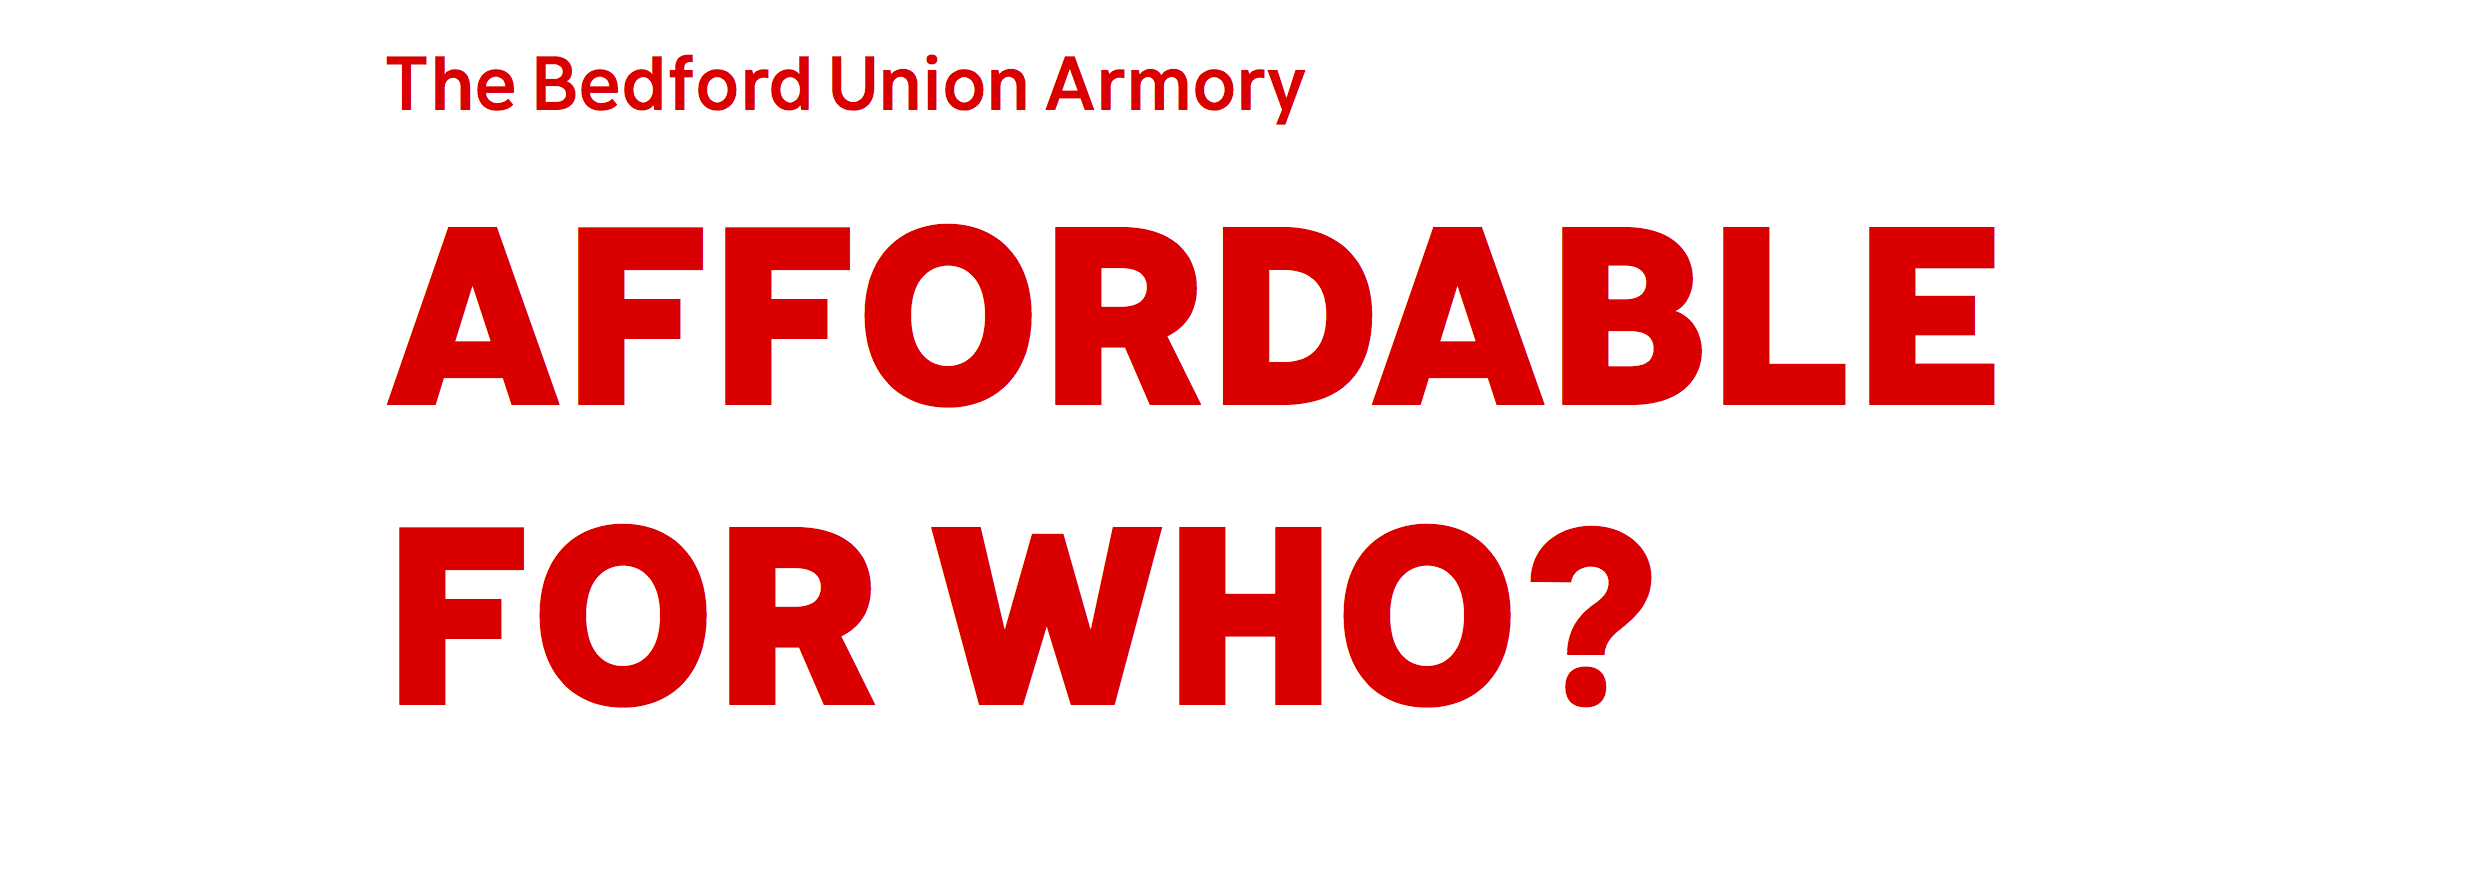 170518_Affordable for Who.png